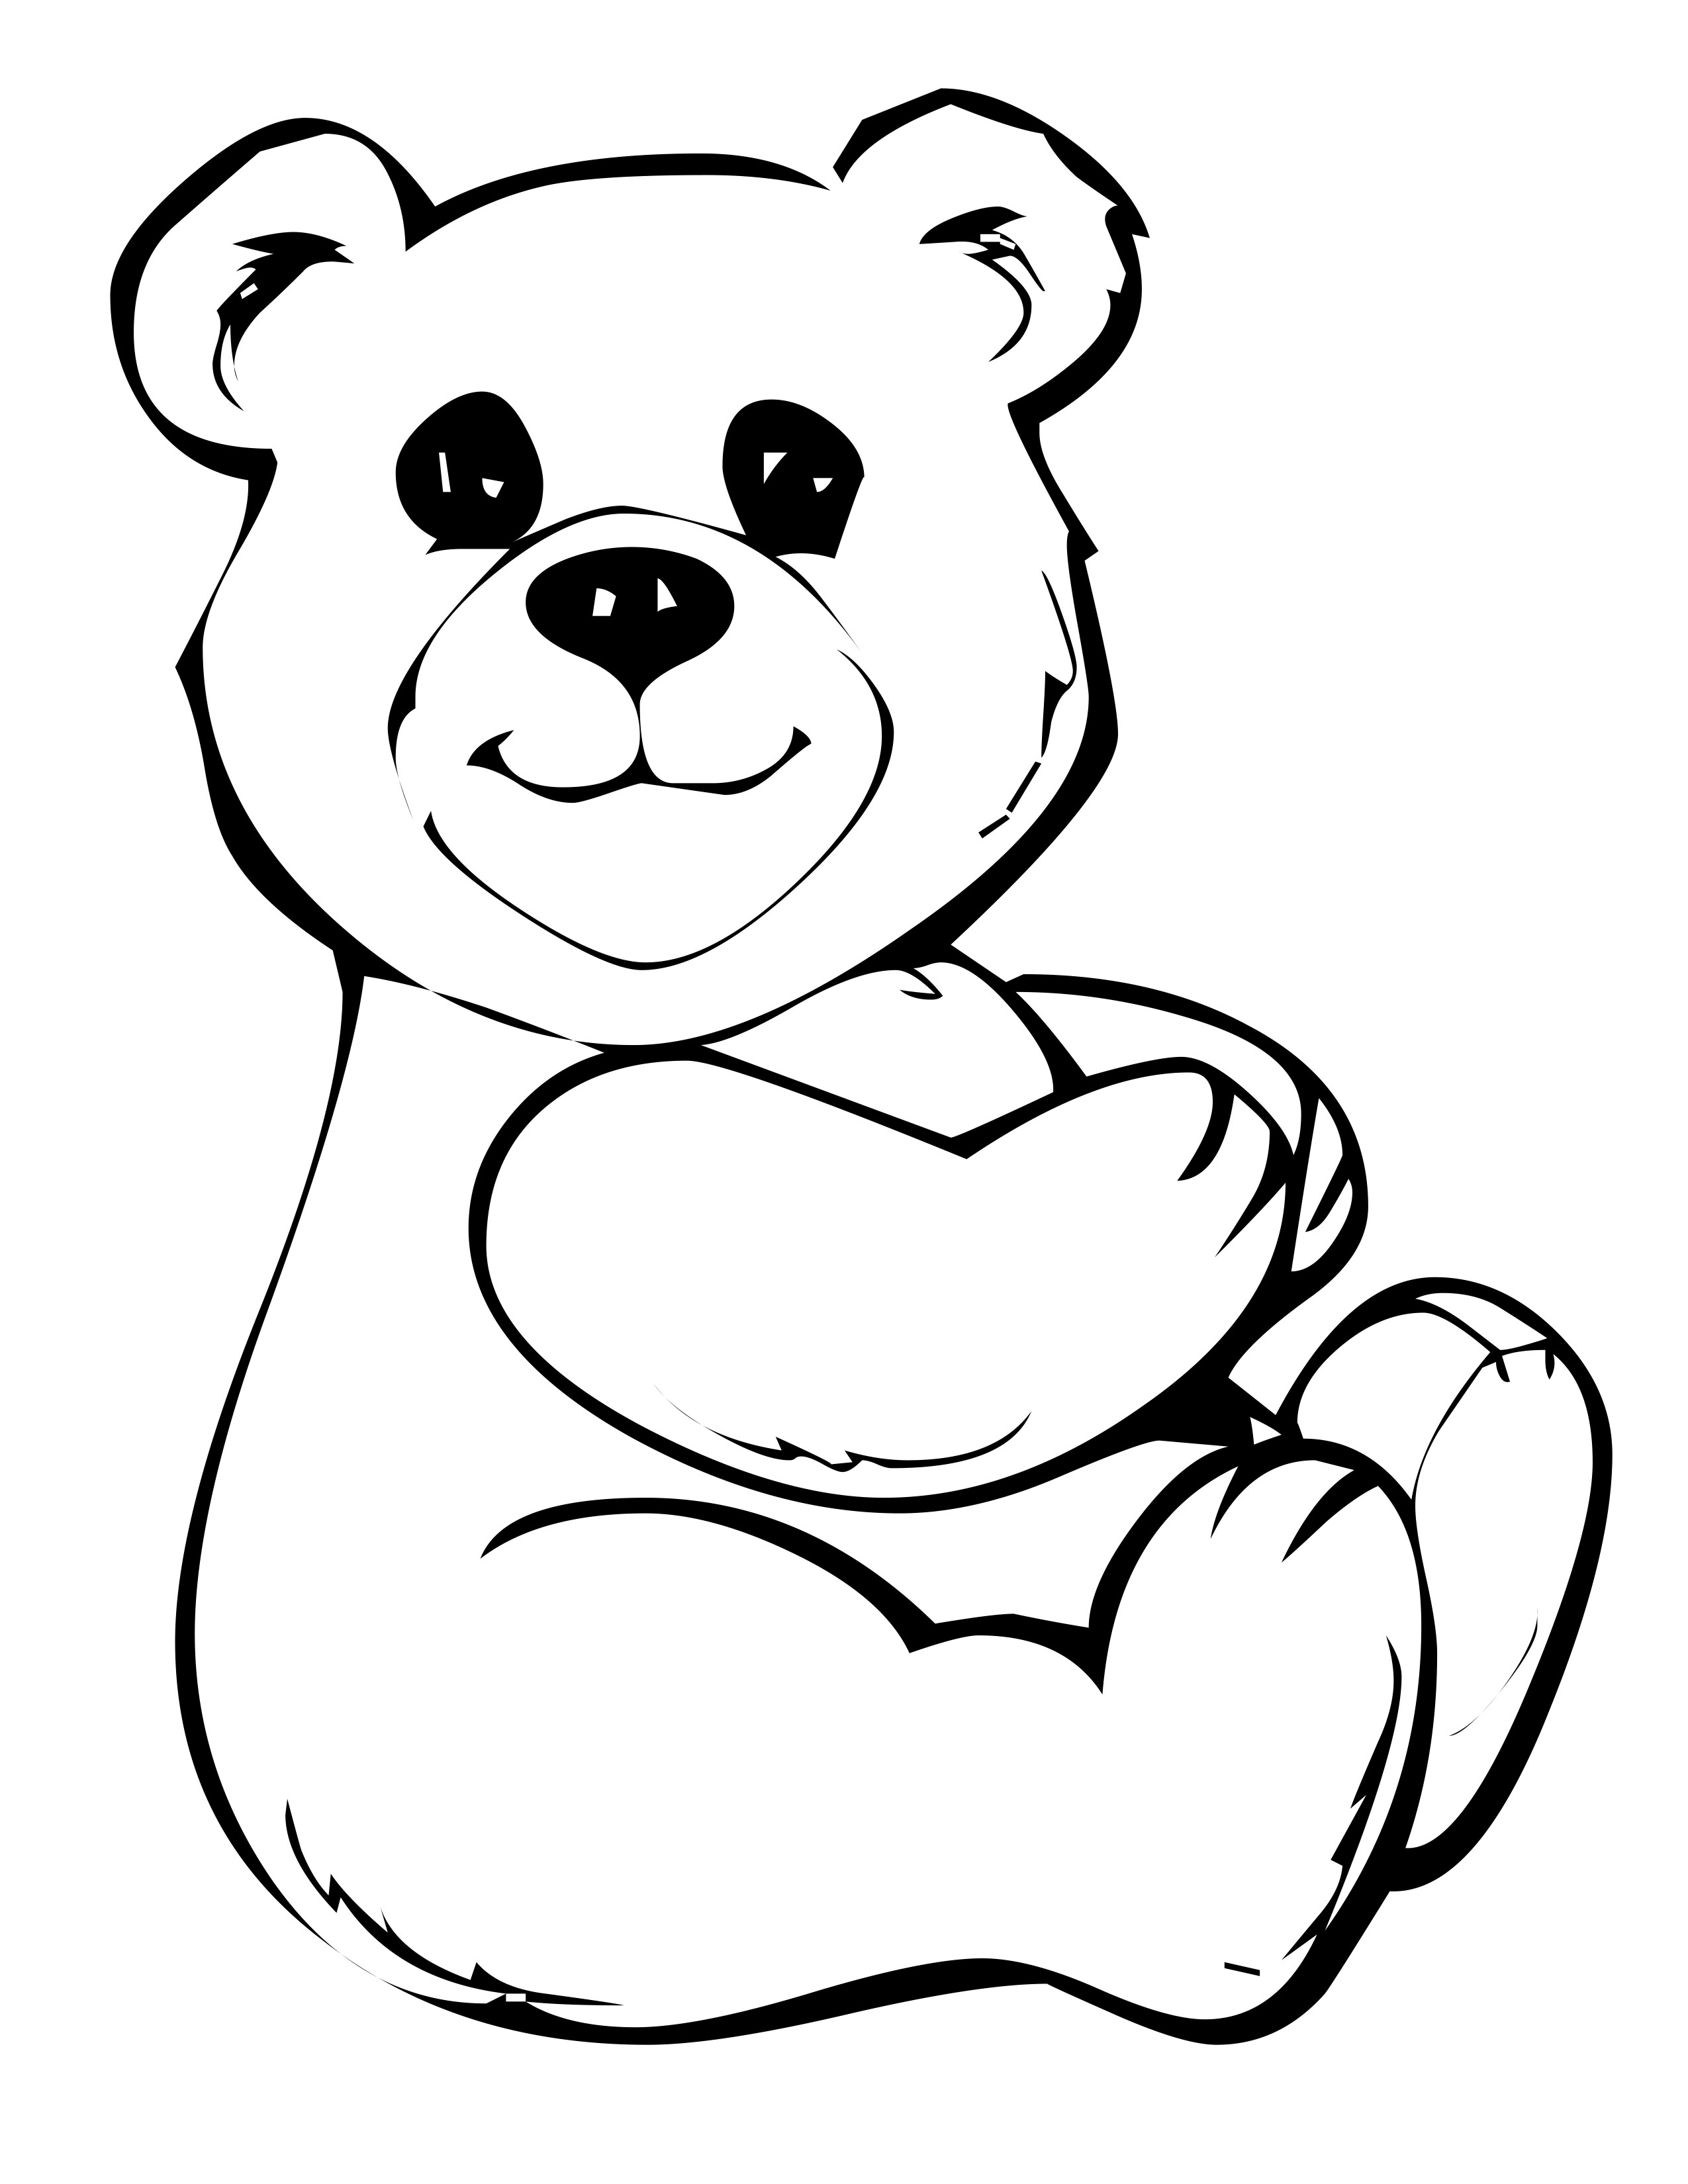 free pictures of teddy bears to colour free printable teddy bear coloring pages for kids colour free of pictures teddy to bears